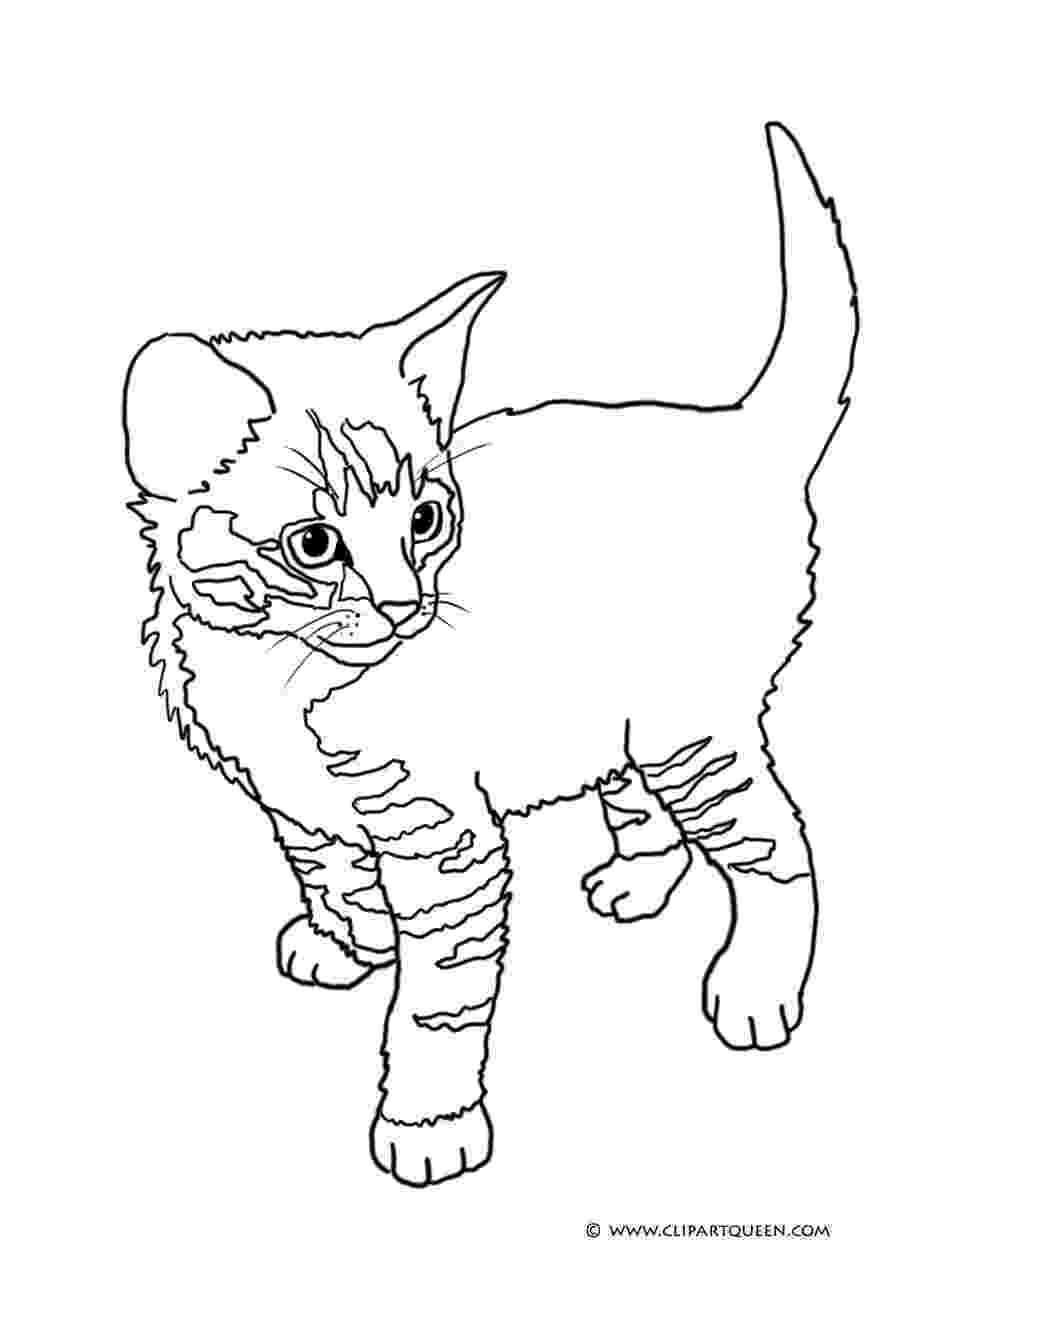 coloring pages cute cats cute kitten cats adult coloring pages cute cats pages coloring